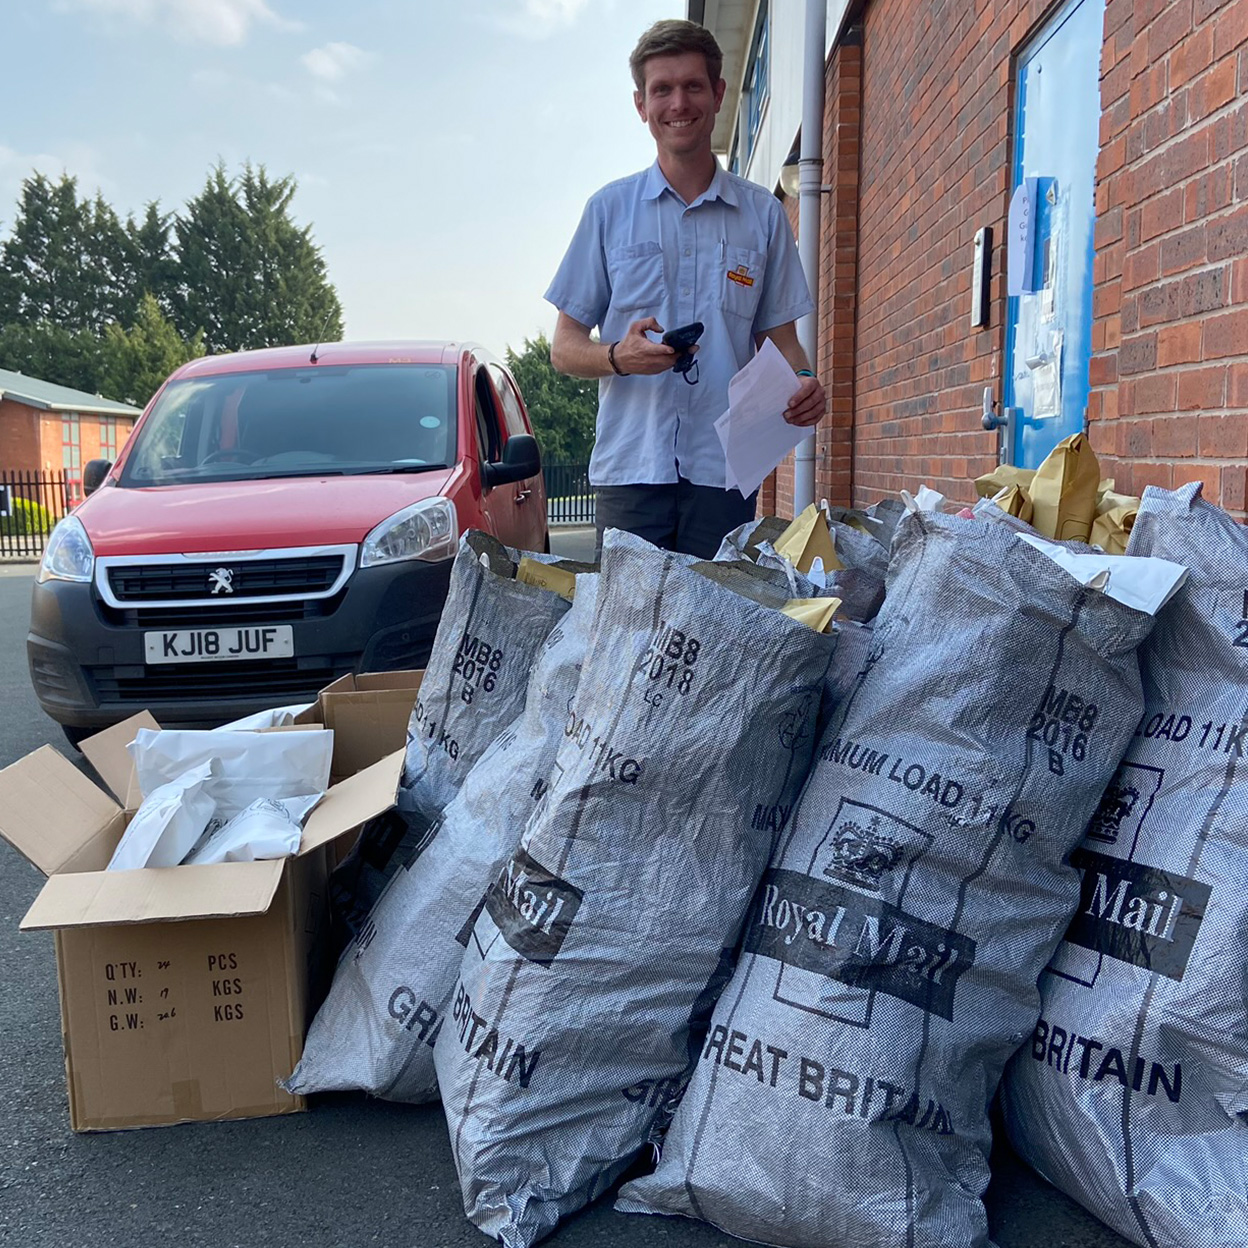 HDANYWHERE donate 10,000 masks duing the first 2020 lockdown in the UK